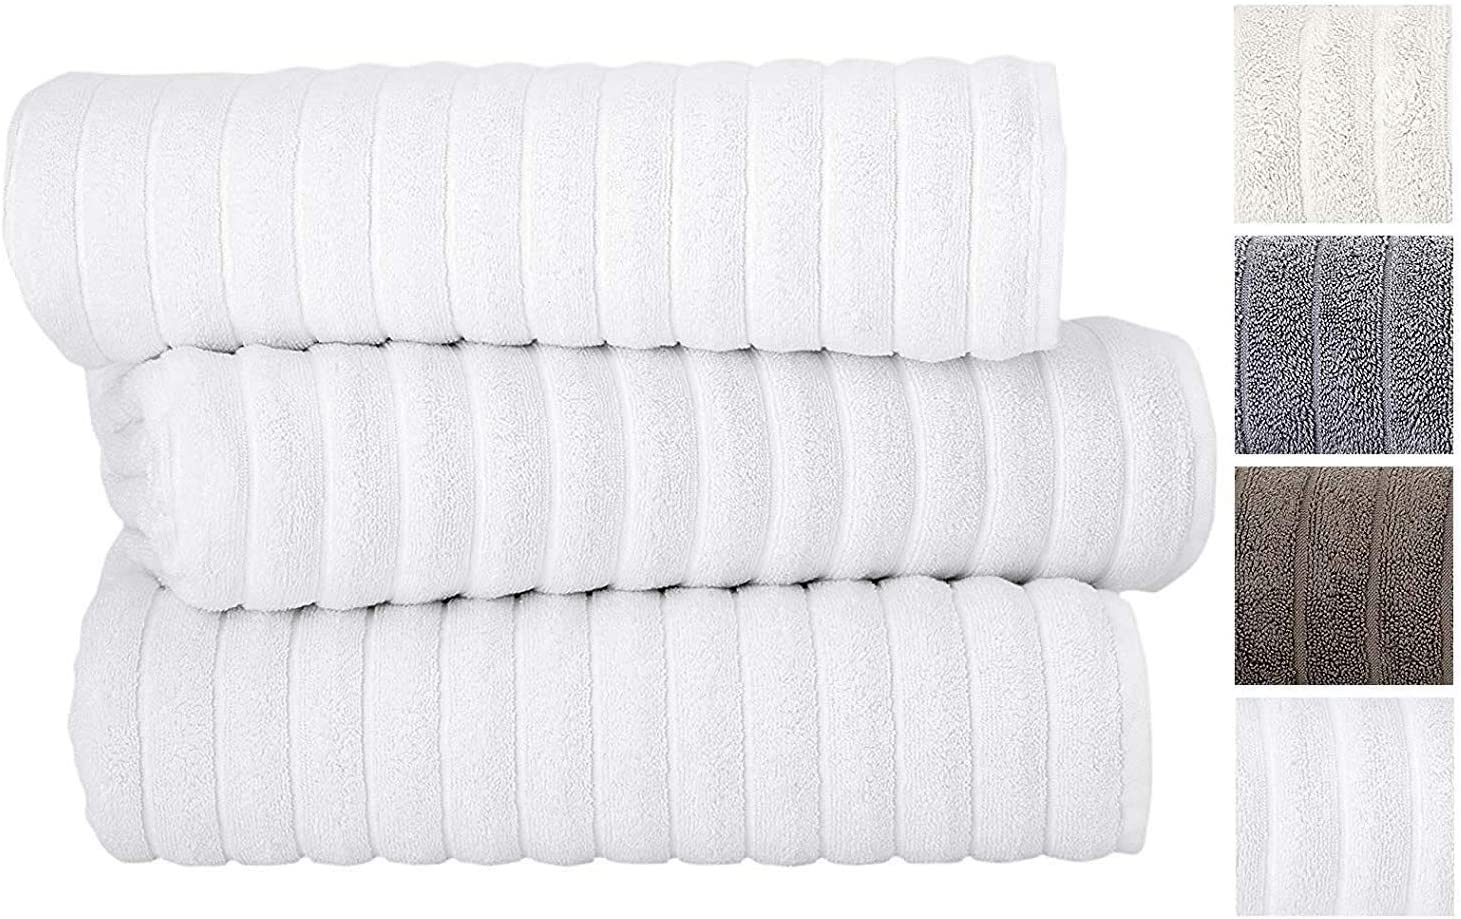 Excellent double stitching: Classic Turkish Luxury Bath Sheets